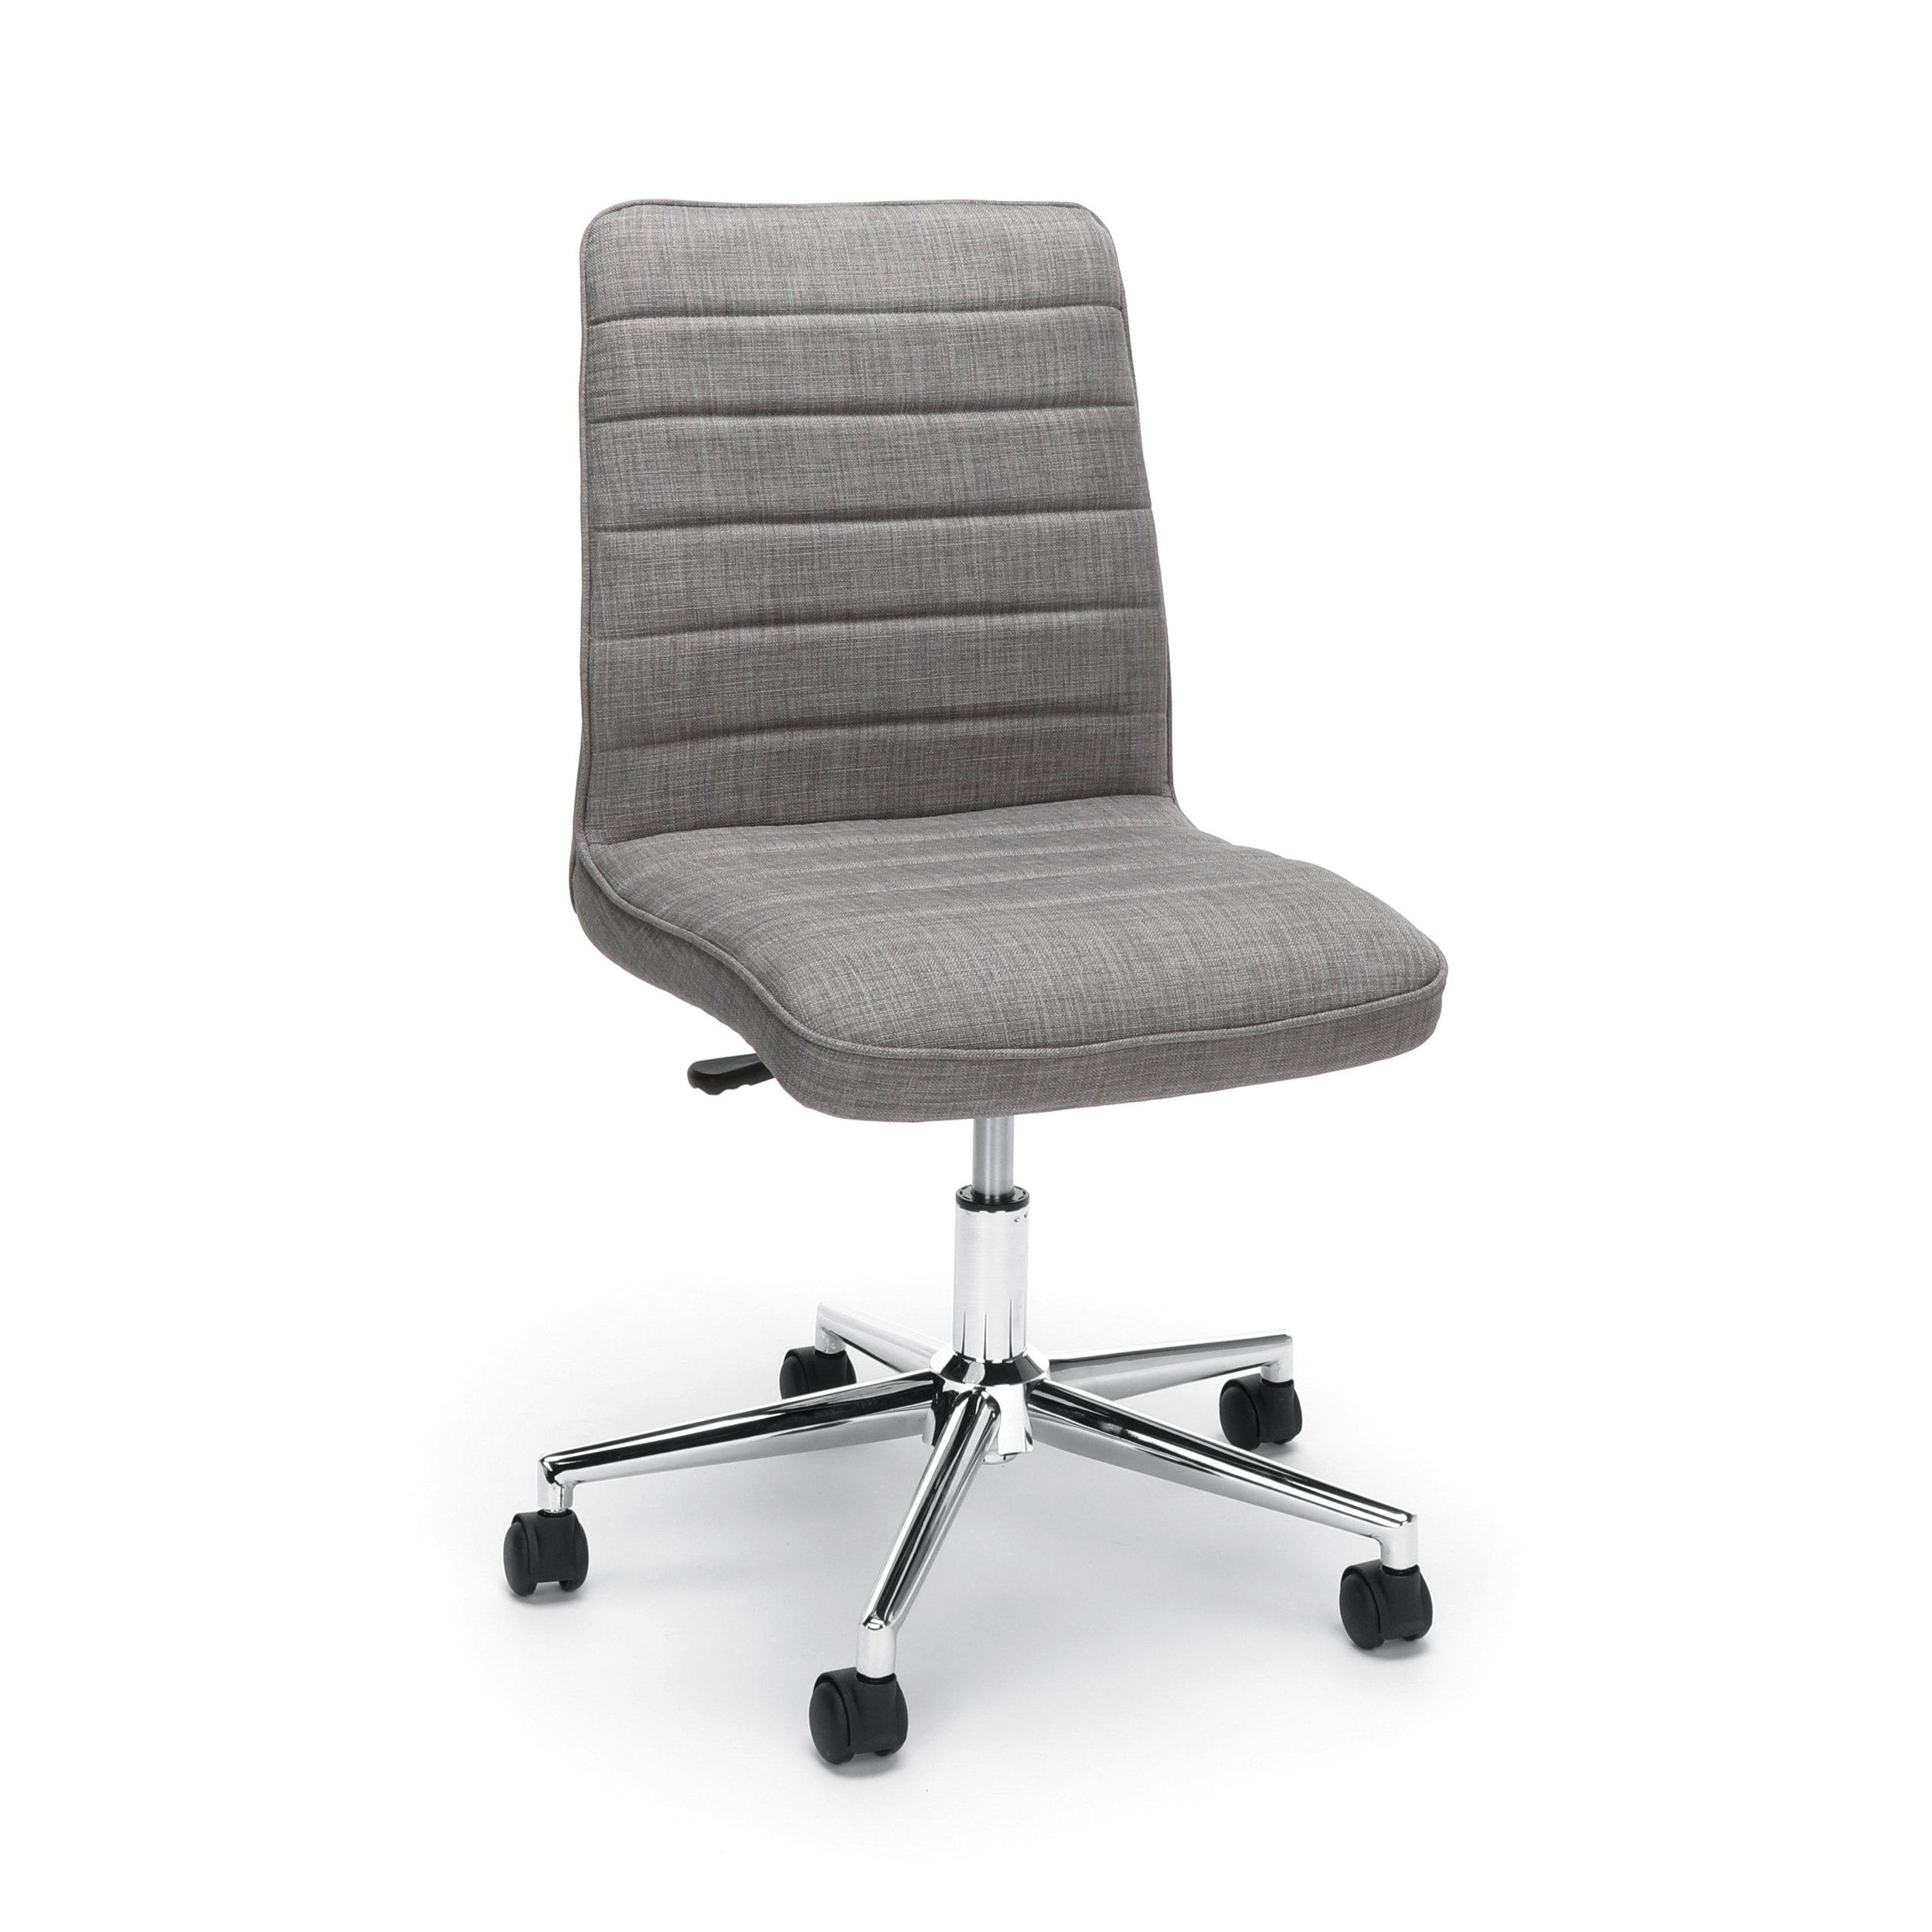 Essentials Upholstered Mid-Back Office Chair - Armless Fabric Computer Chair, Grey (ESS-2080-GRY) by OFM